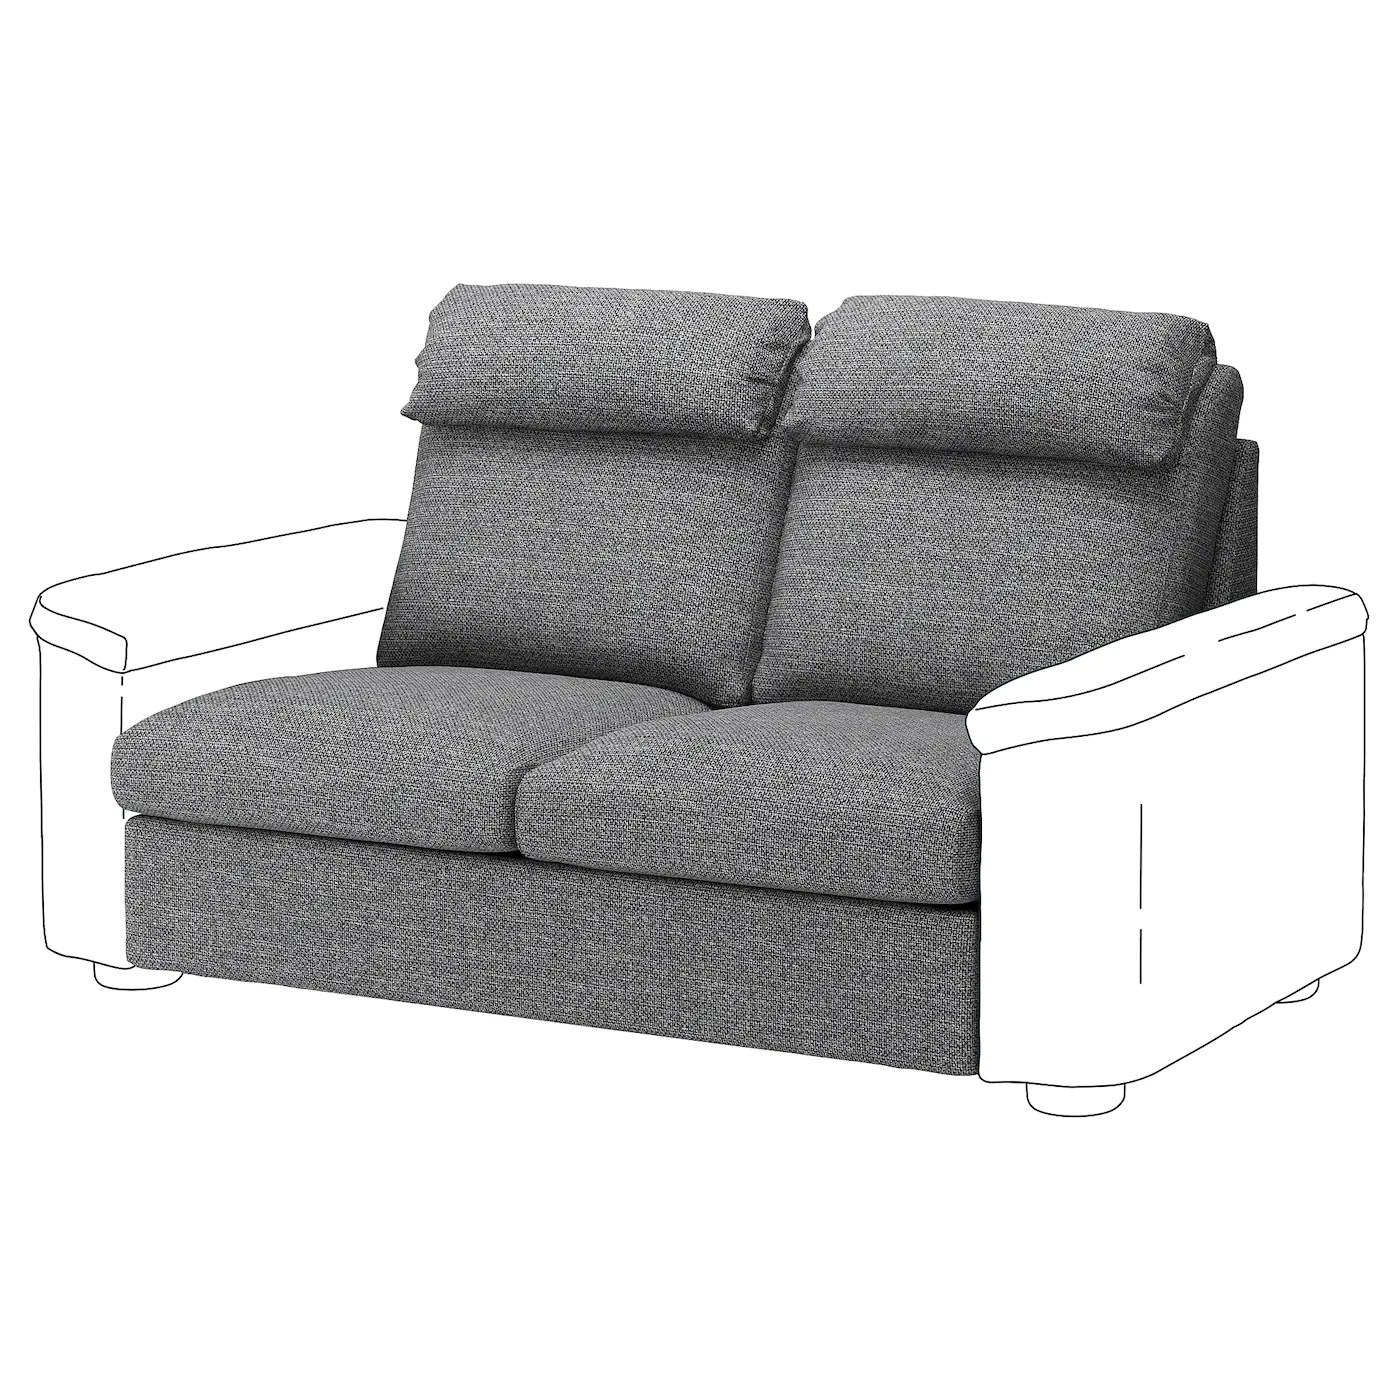 dog sofa protector argos corner with removable washable covers bed ireland baci living room